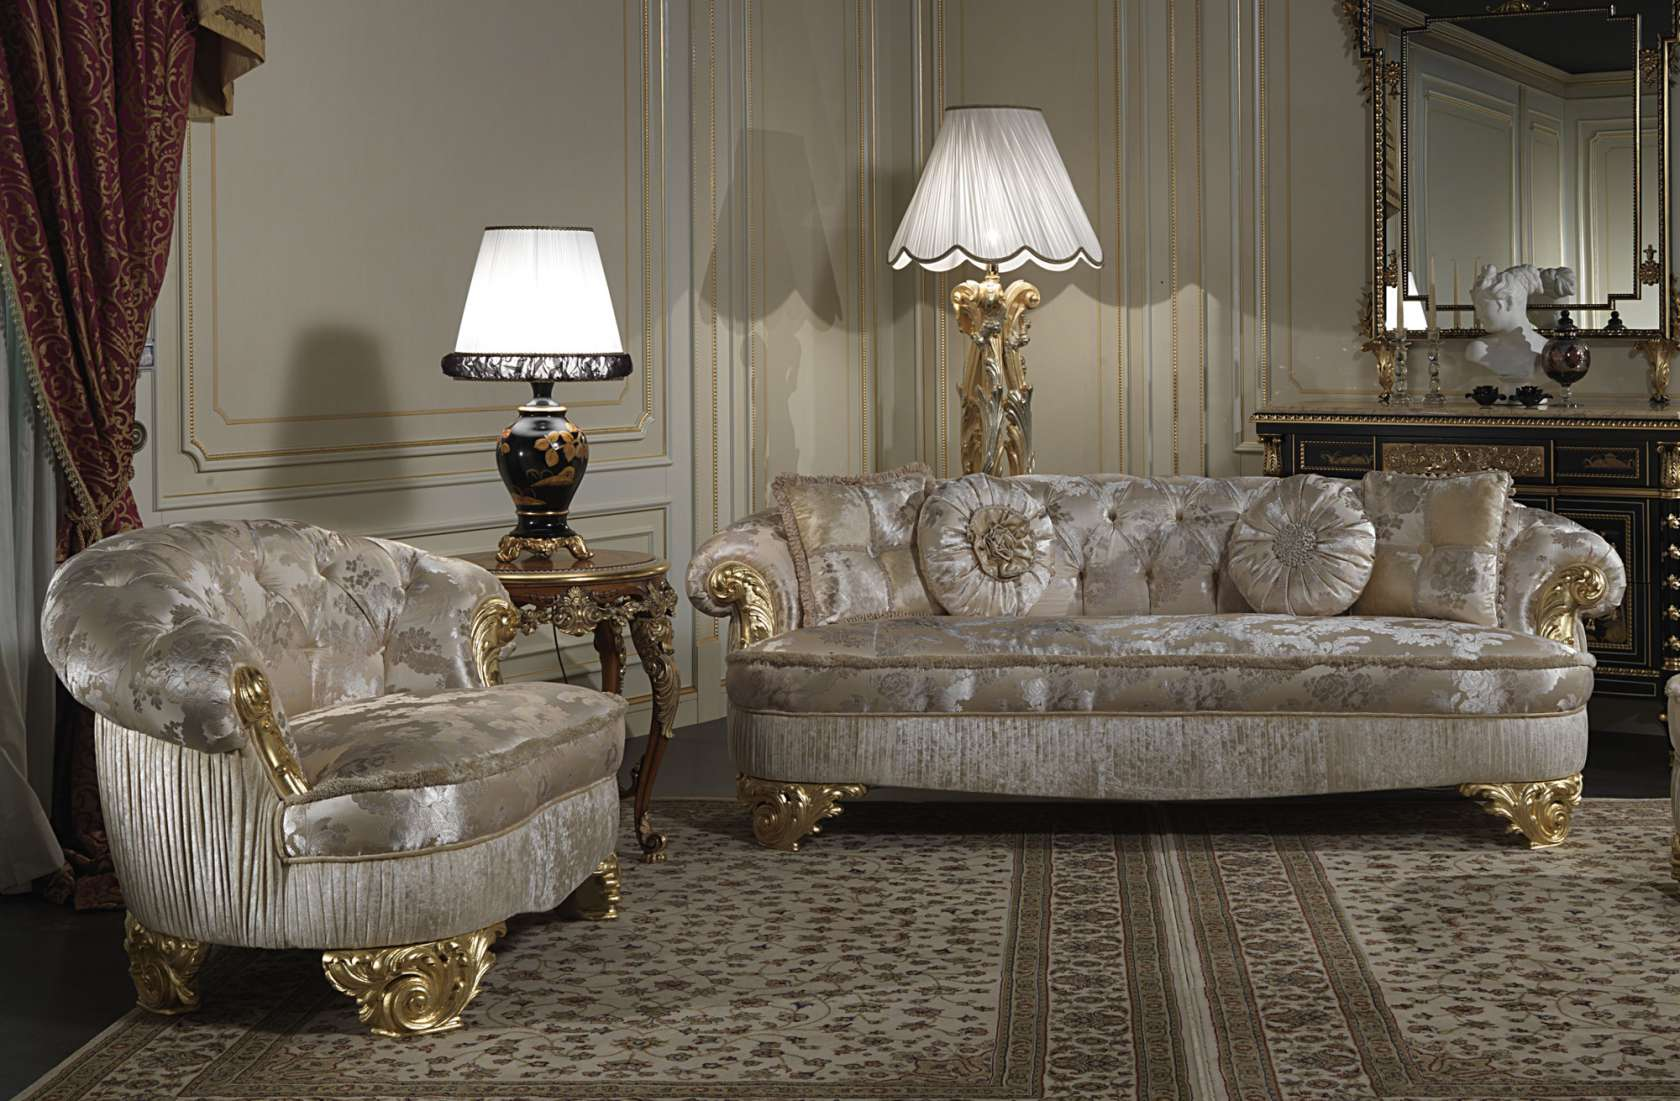 Upholstered Luxury Sofas For Classic Living Room Paris